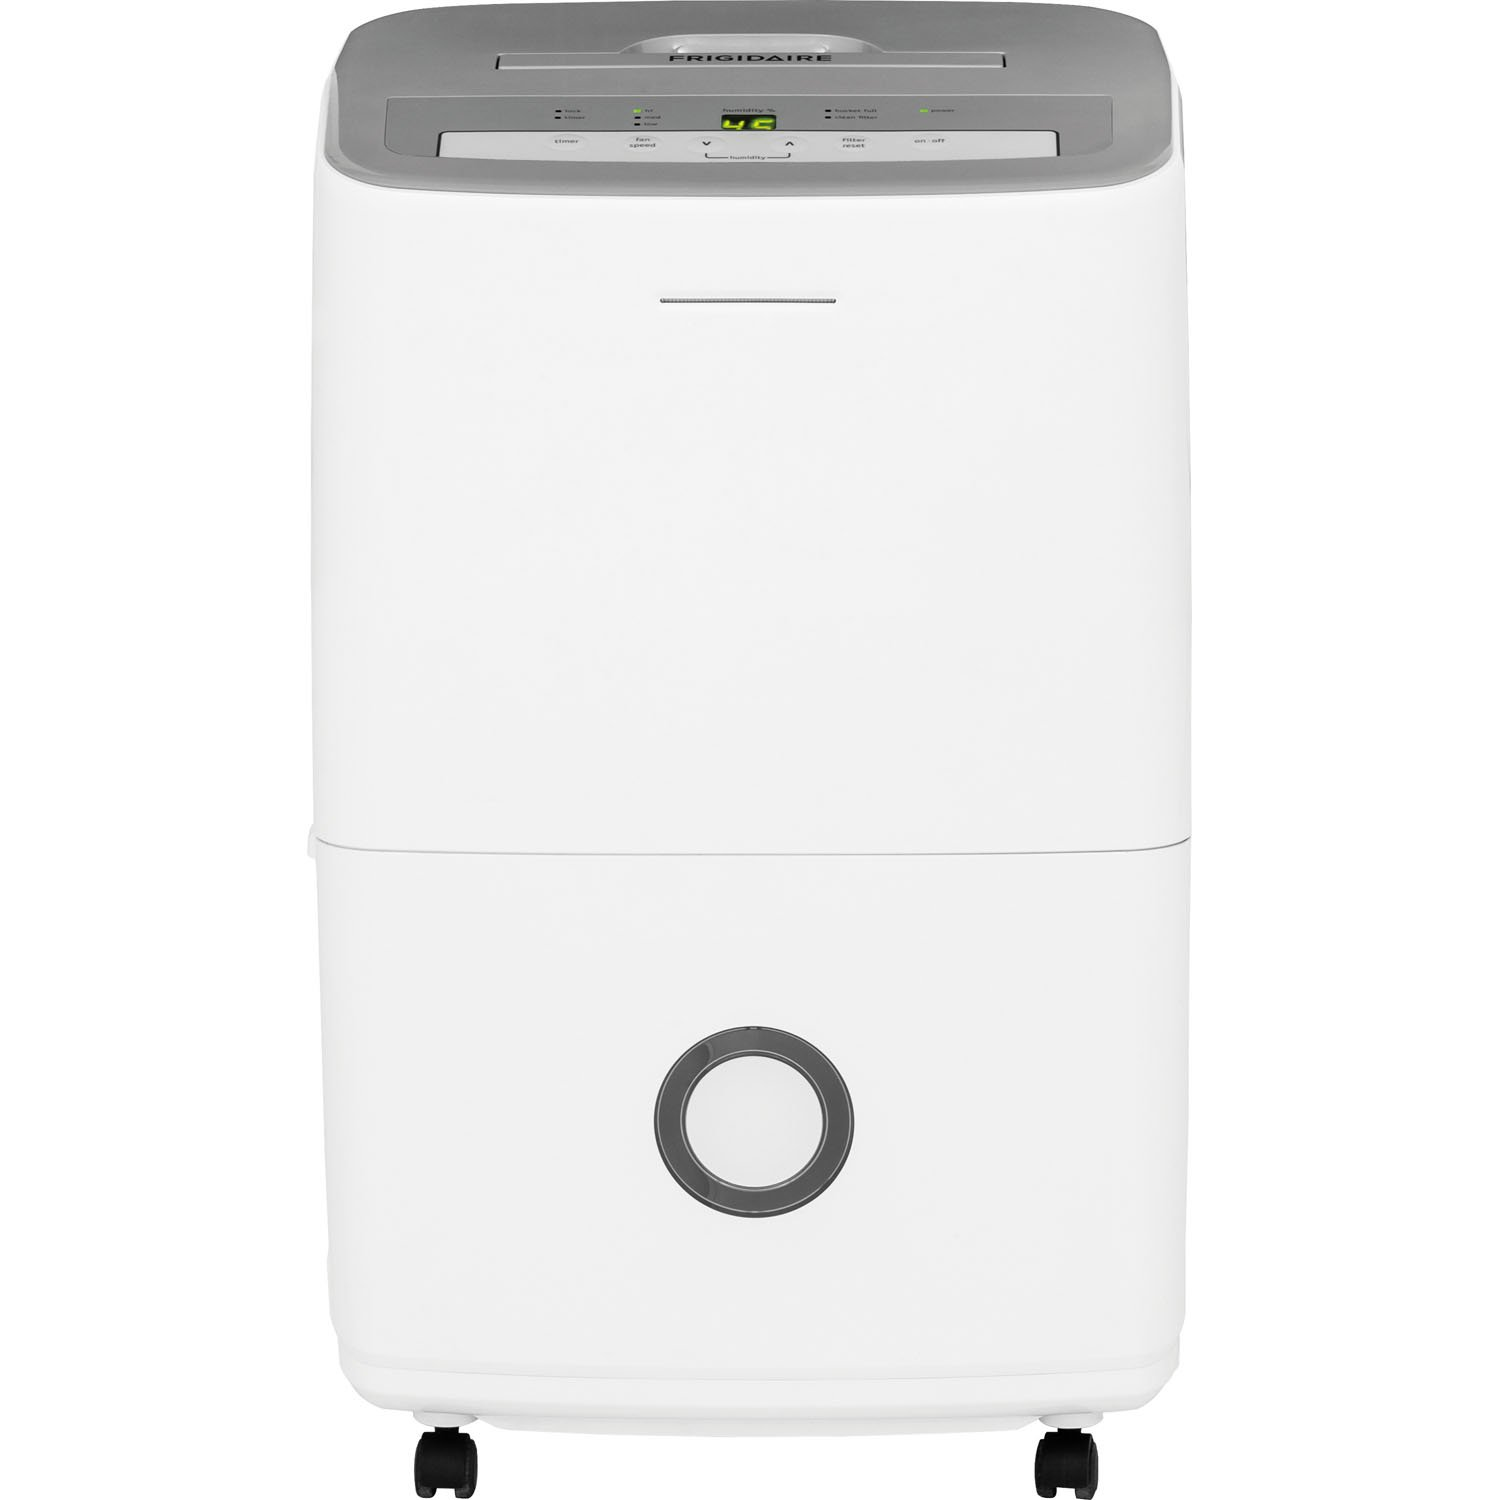 Frigidaire FFAD7033R1 Energy Star Dehumidifier with Effortless Humidity Control